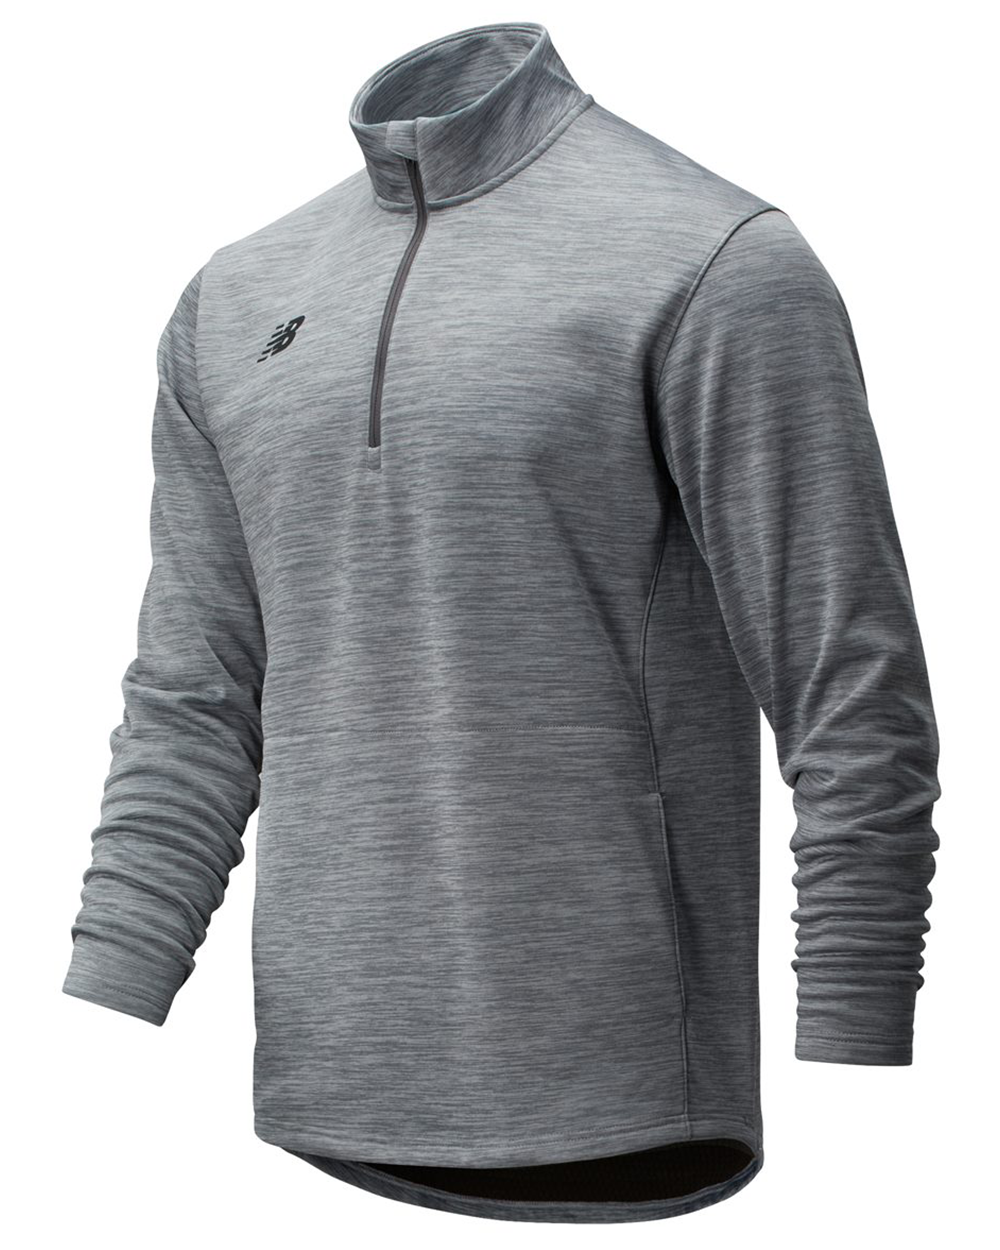 Thermal 1/4 Zip Pullover